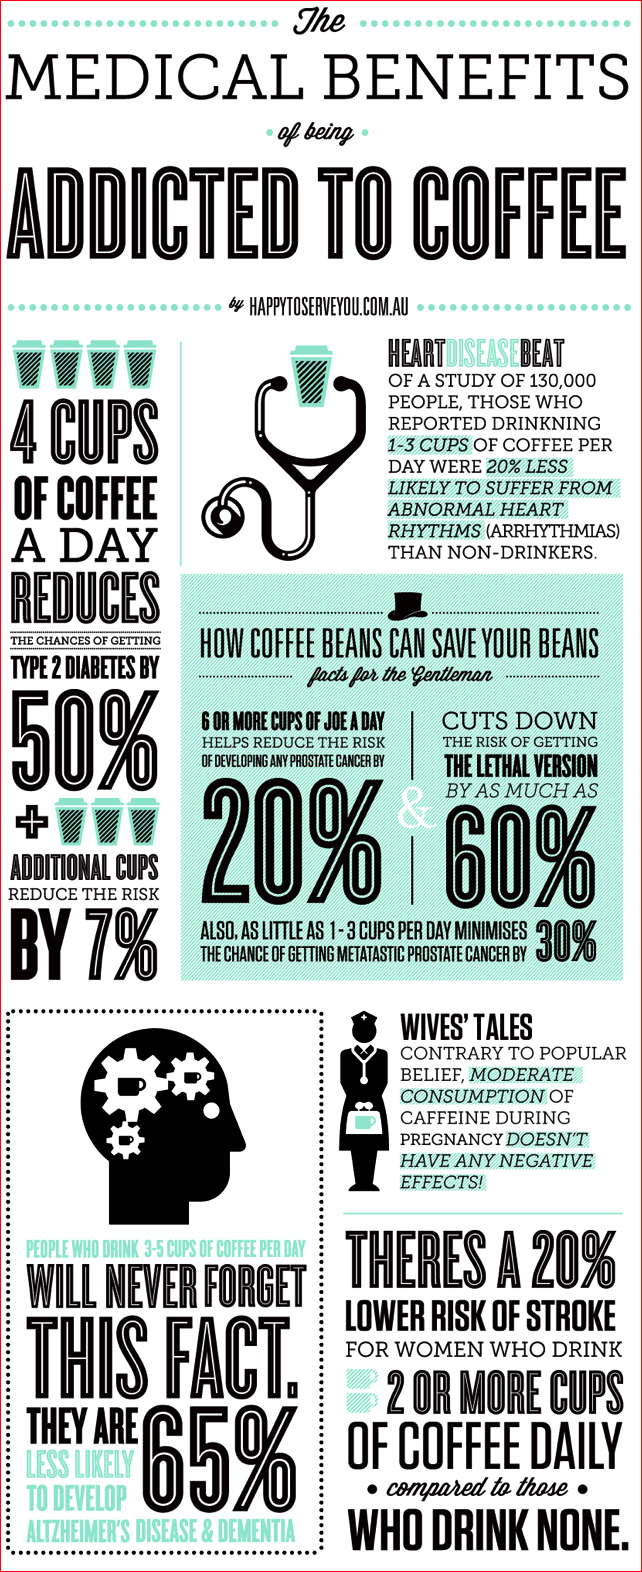 MEDICAL-BENEFITS-OF-BEING-A-COFFEE-ADDICT_2_900